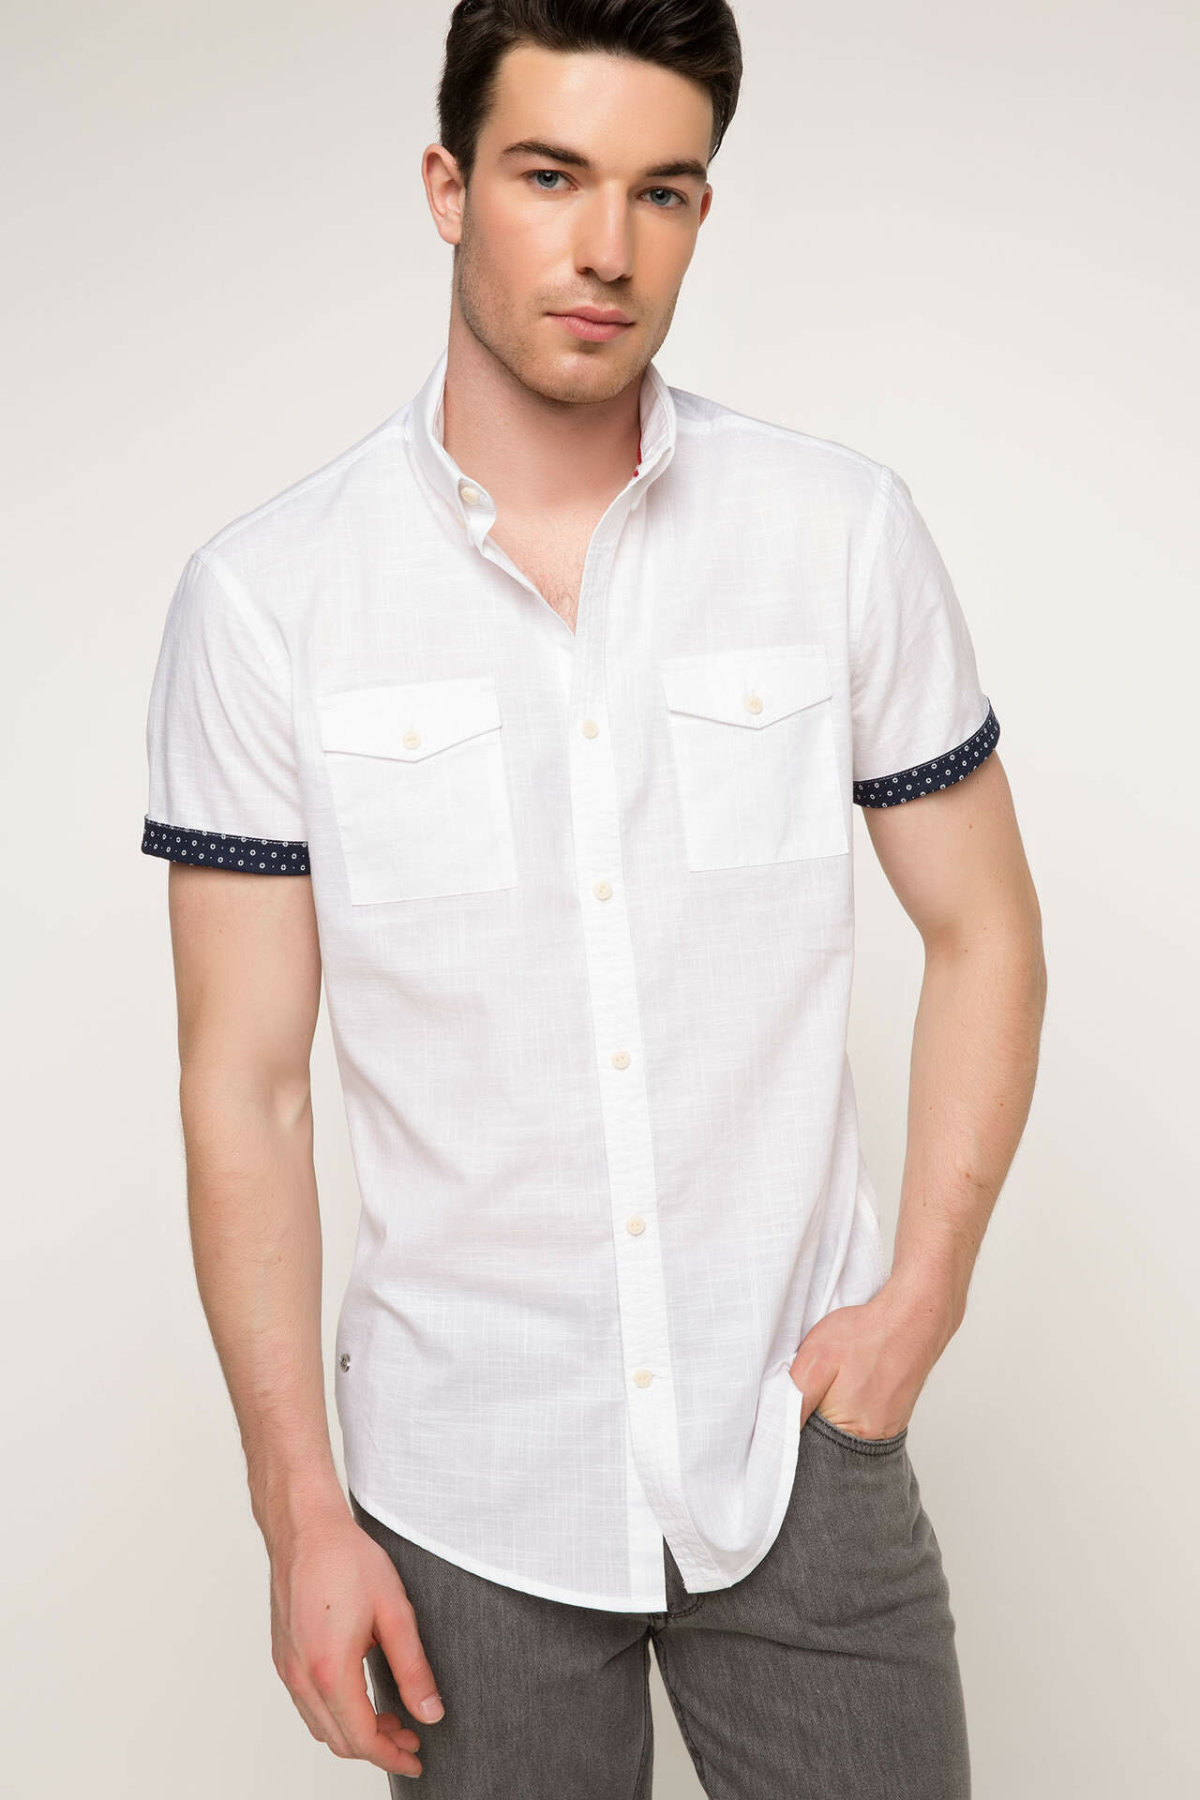 DeFacto Summer Man Short Sleeve Shirt Casual Male Fashion Lapel White Blousers Men's High Quality Shirts New - G7213AZ17SM